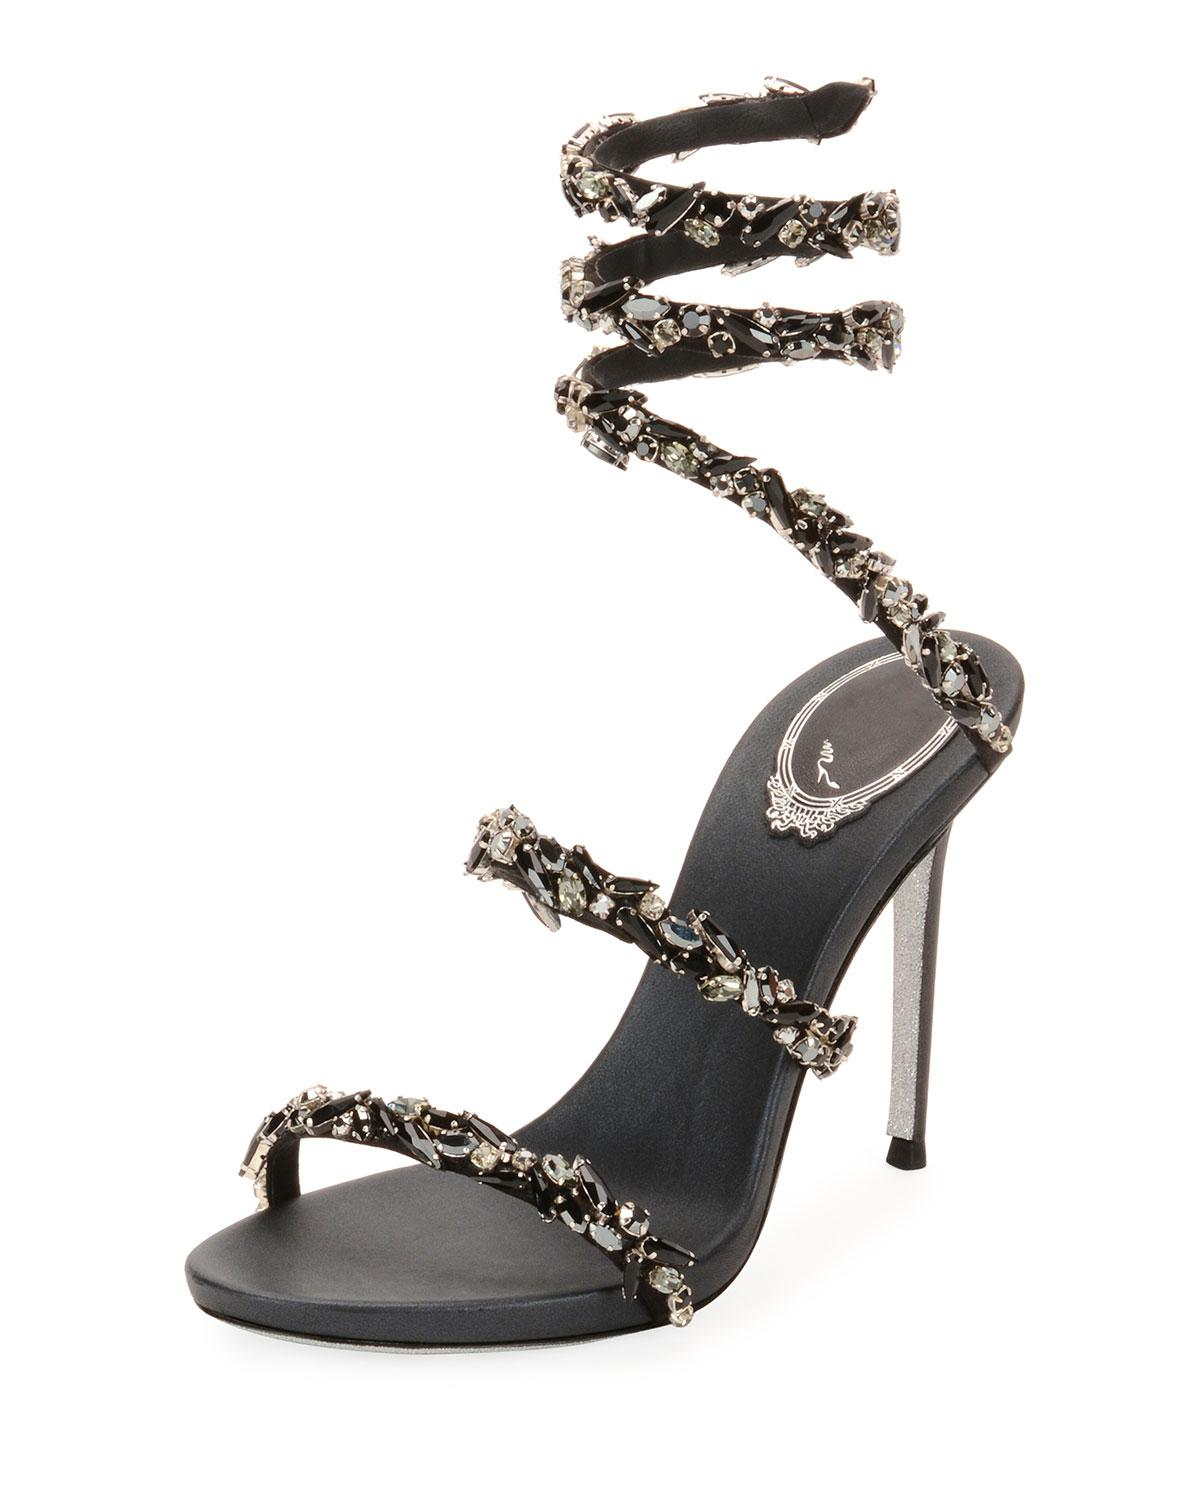 08ad4b3cb8a28 Lyst - Rene Caovilla Snake-coil Sandal With Crystal Detail in Black